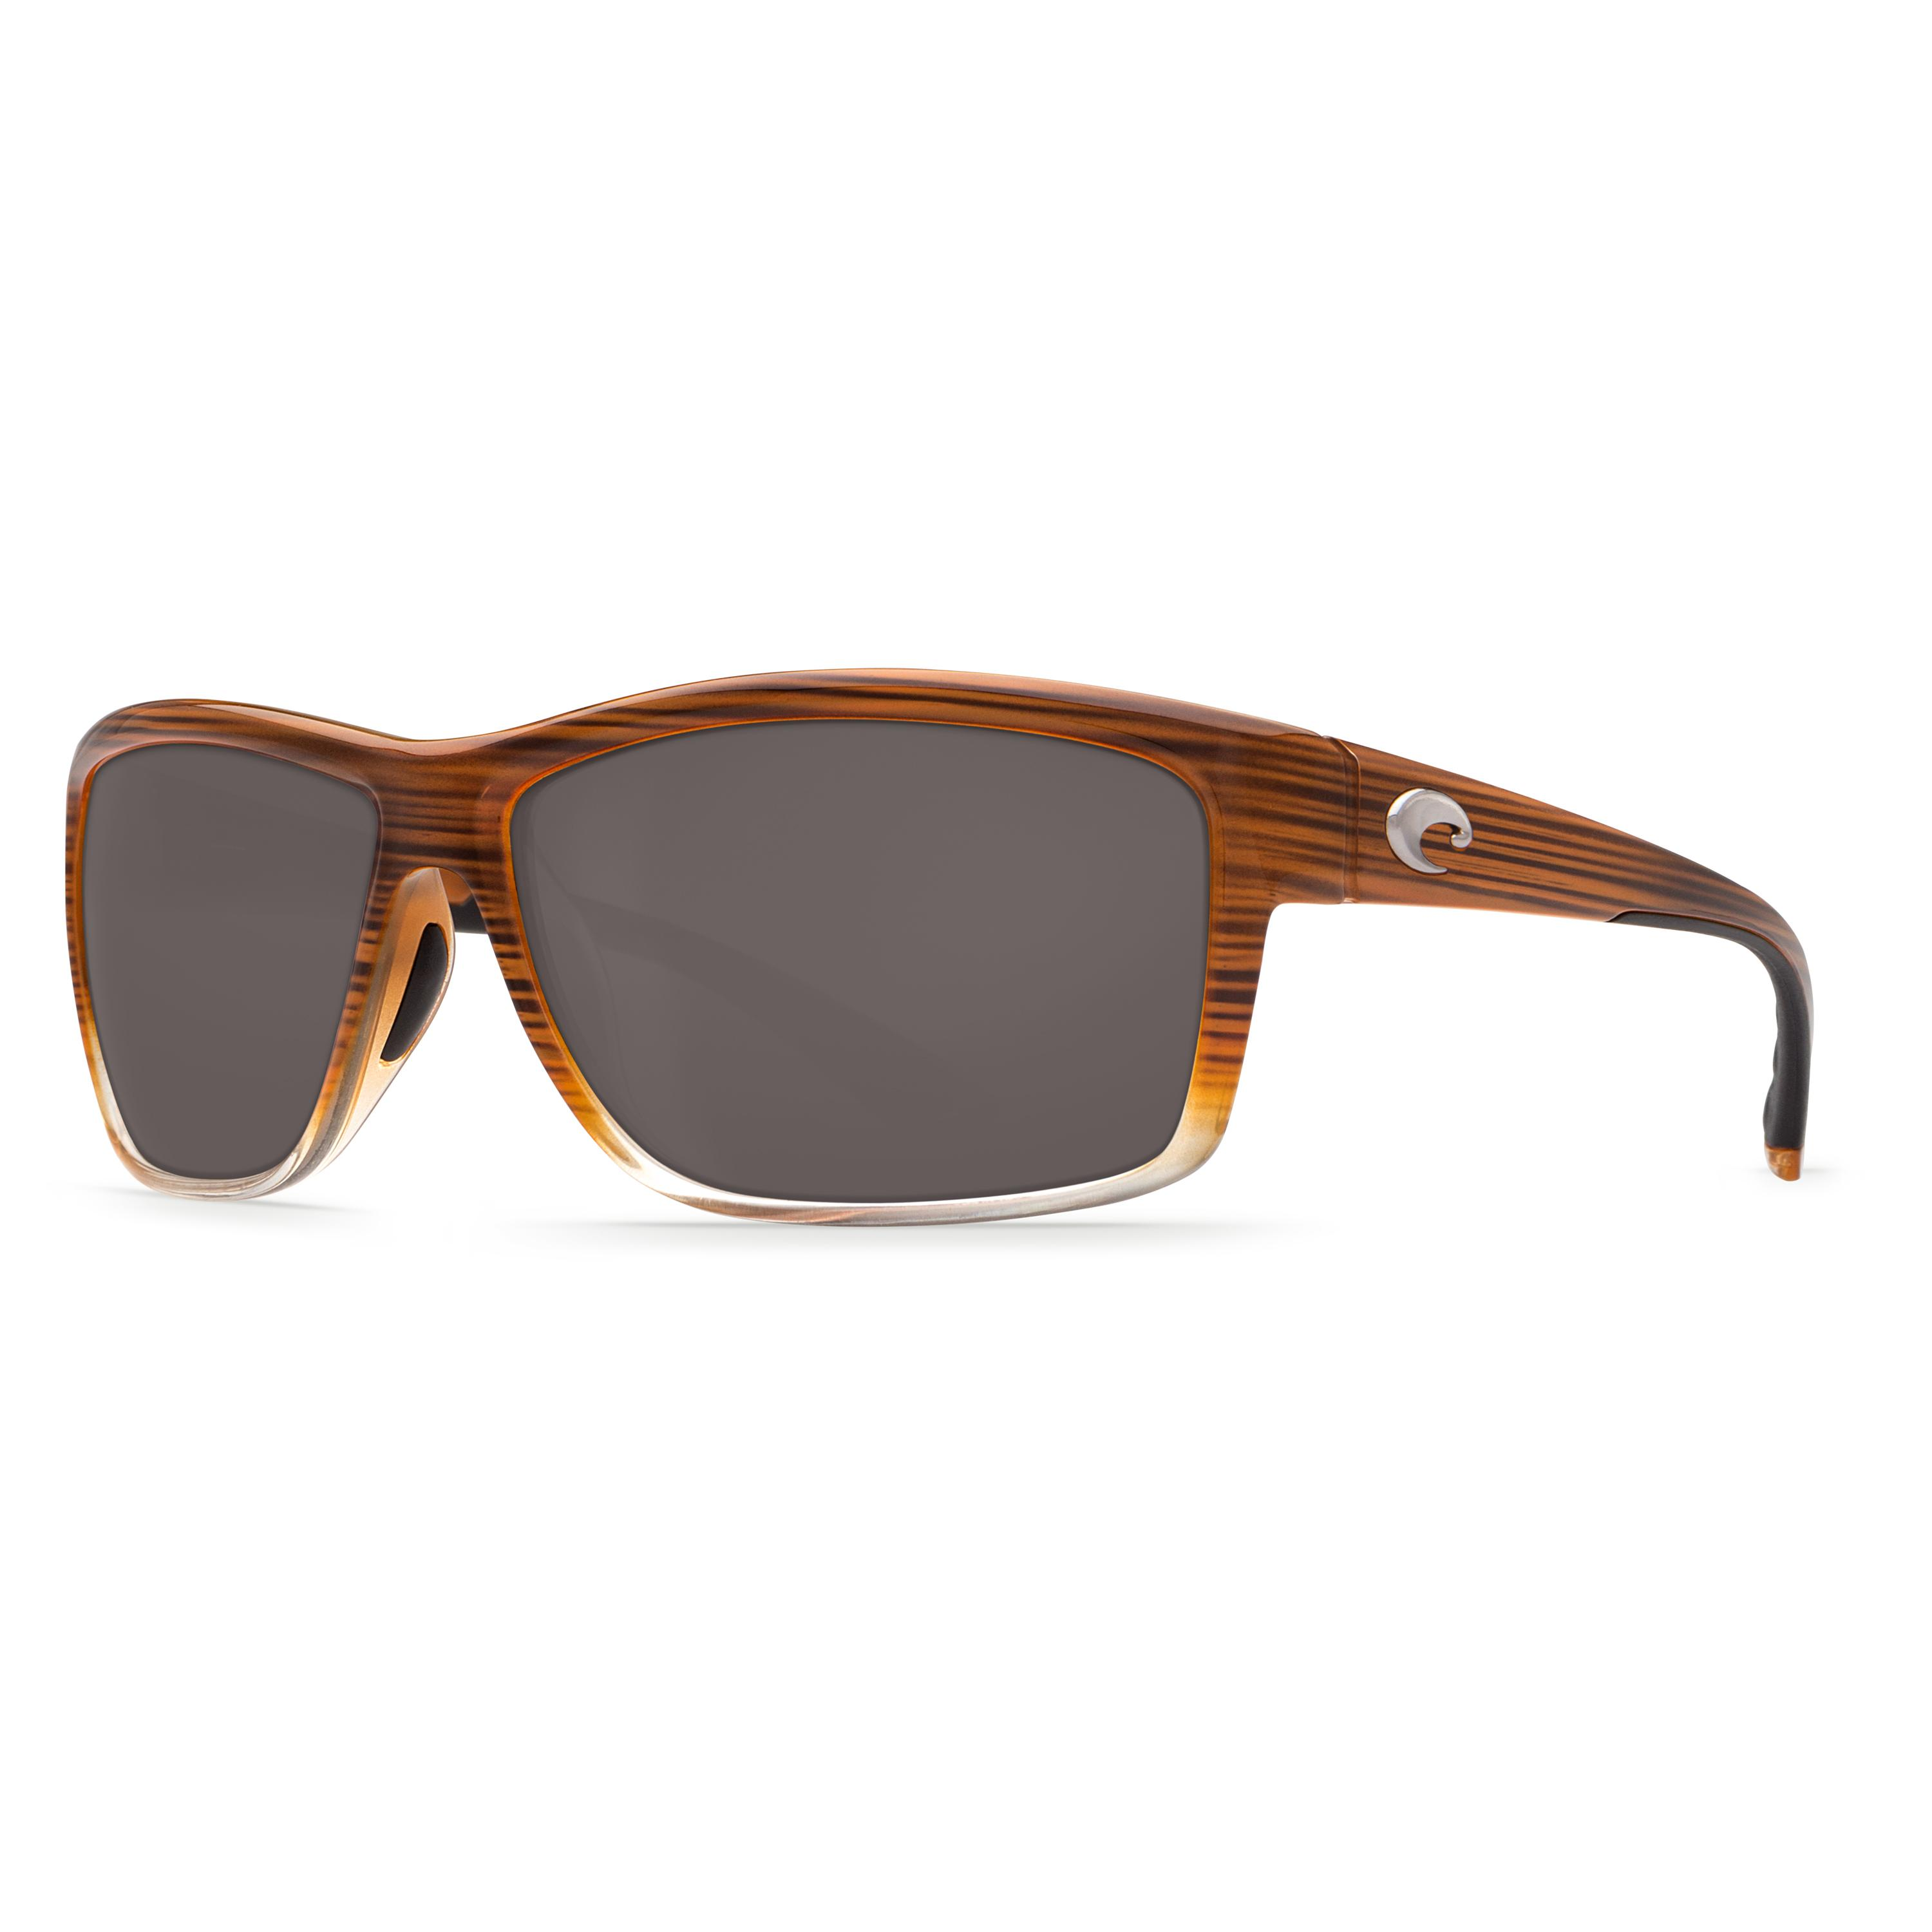 acaed152b1 Amazon.com  Costa Del Mar Mag Bay Sunglasses